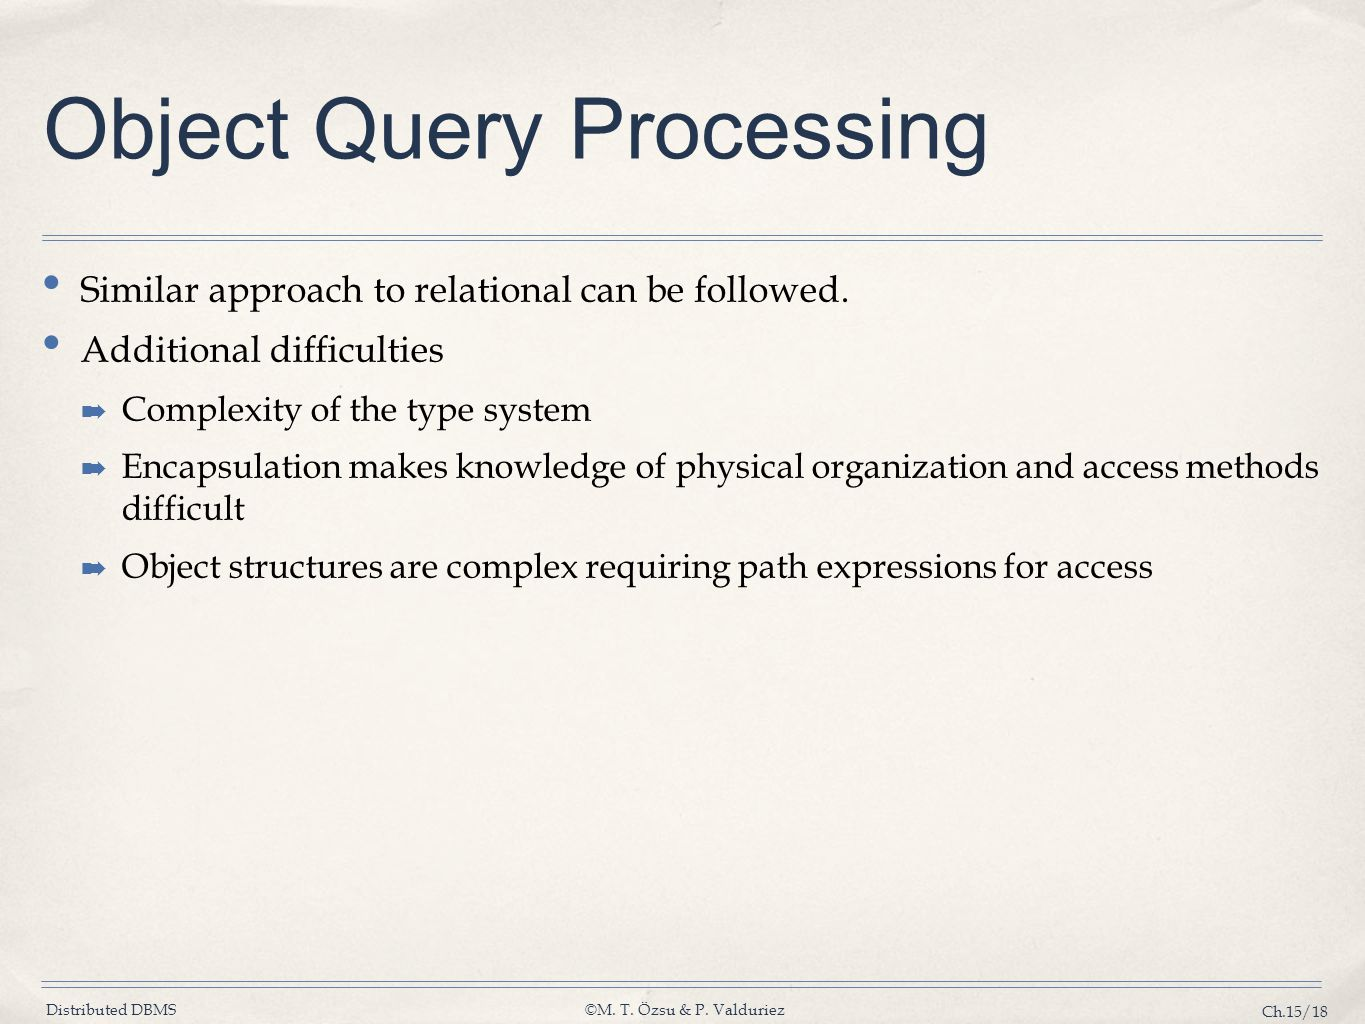 Distributed DBMS©M. T. Özsu & P. Valduriez Ch.15/18 Object Query Processing Similar approach to relational can be followed. Additional difficulties ➡